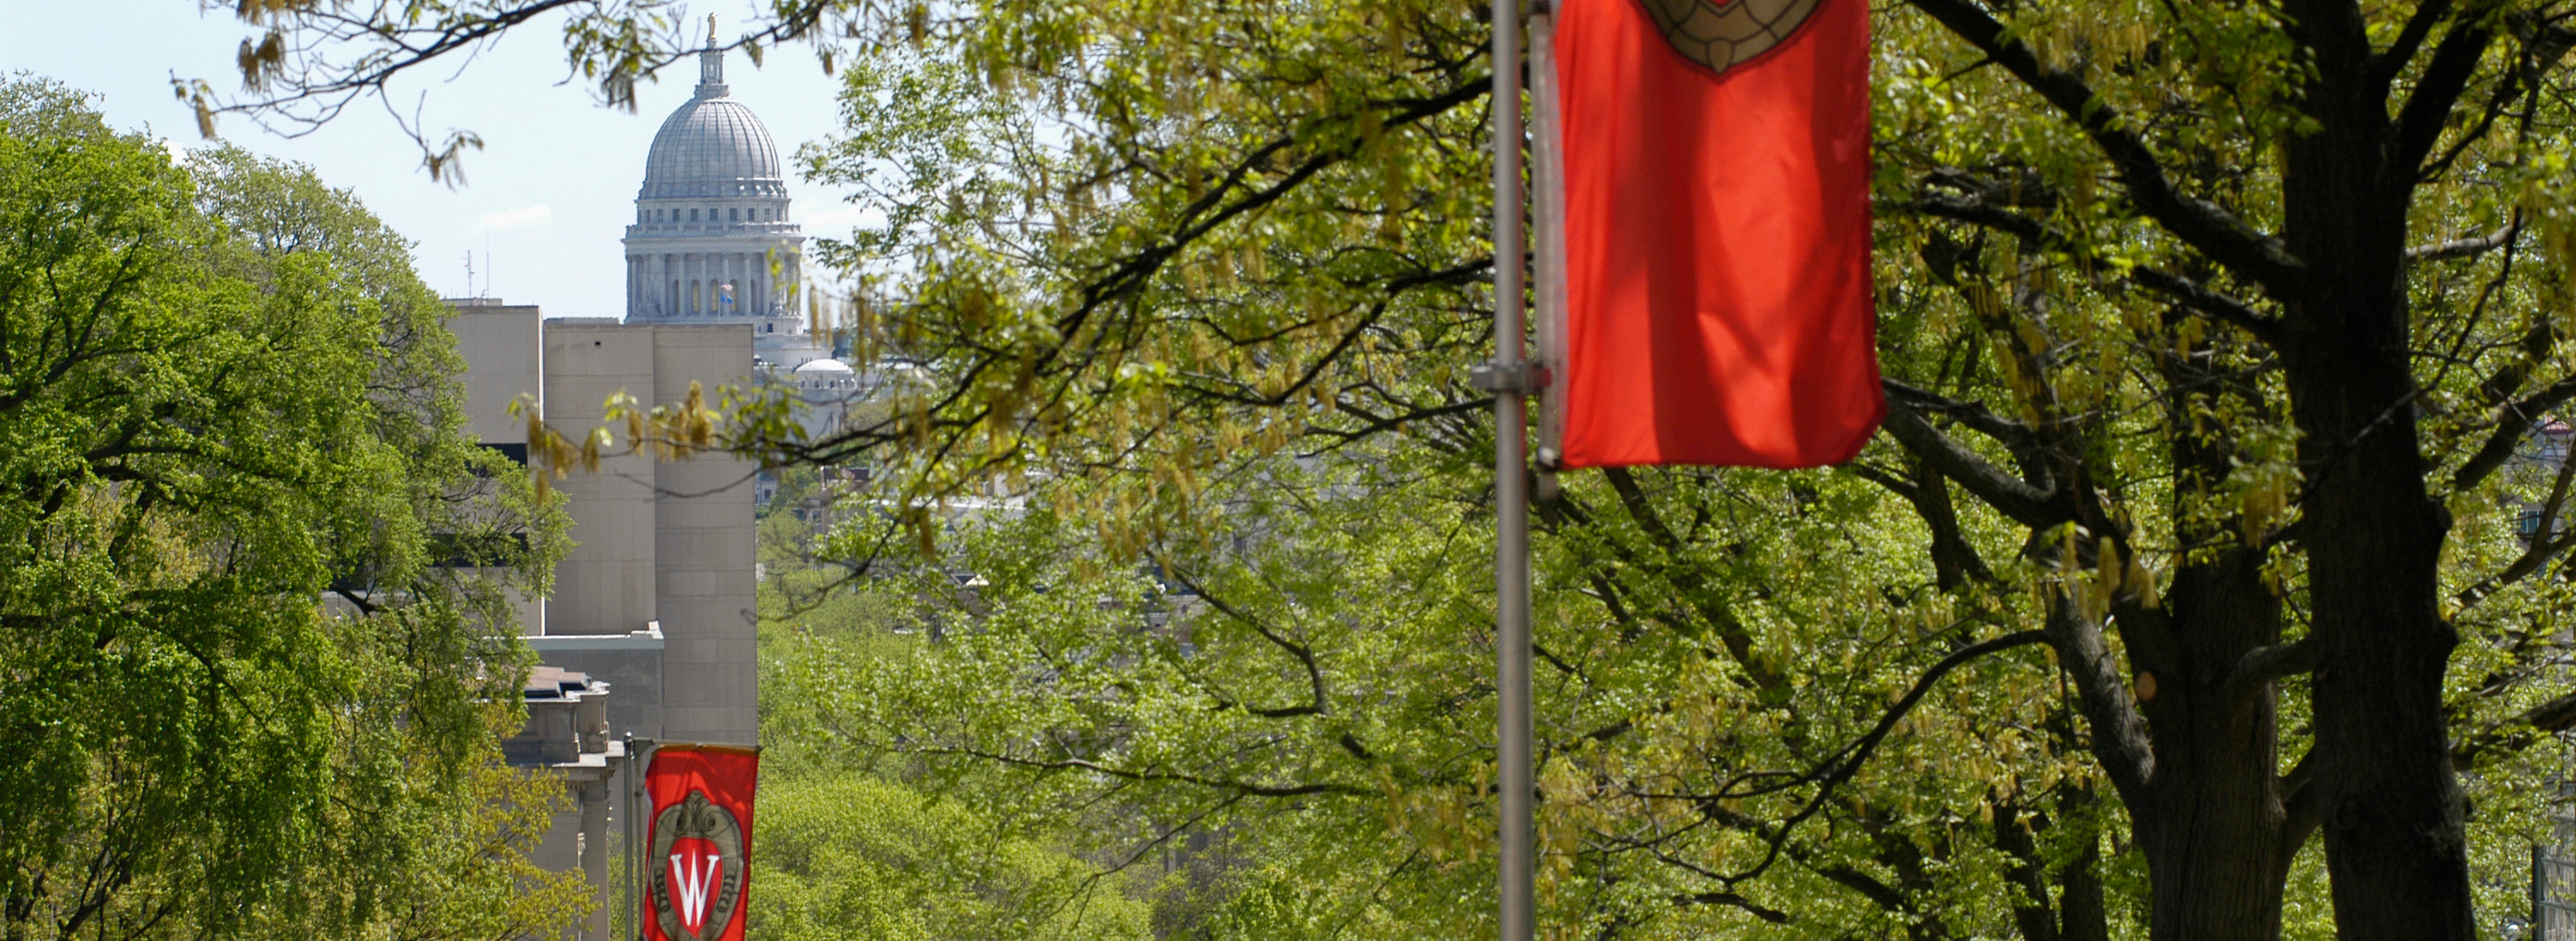 """W"" crest banners hang on Bascom Hill during spring. In the background is the Wisconsin State Capitol dome. (Photo by Jeff Miller)"